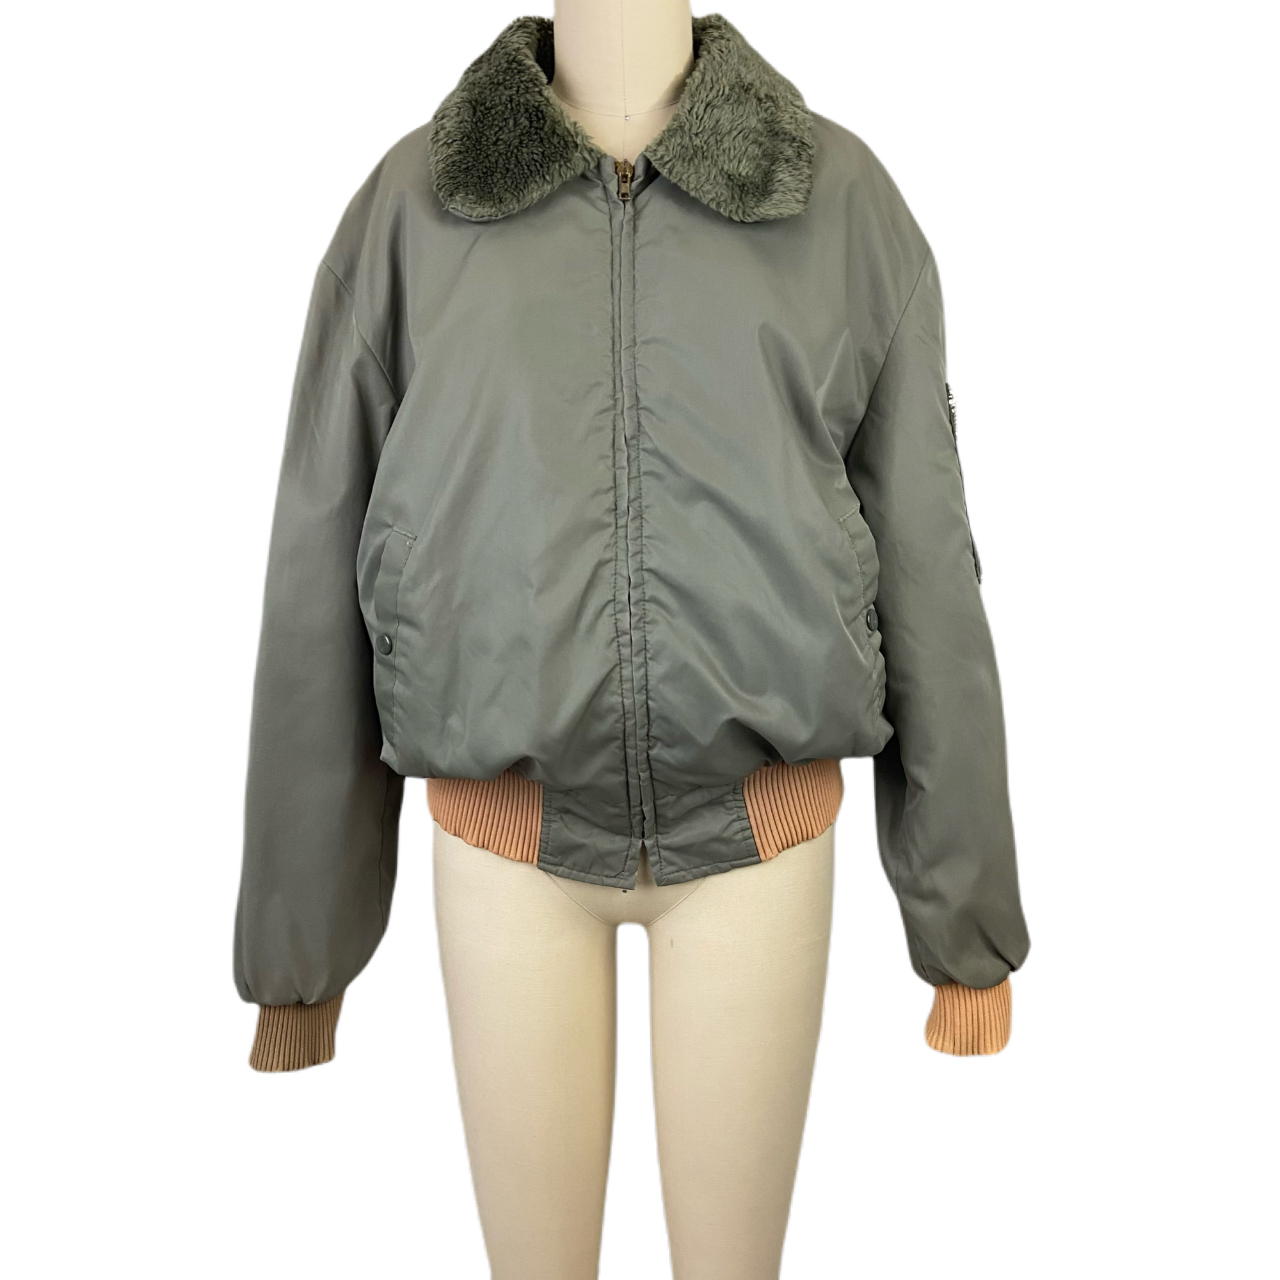 Product Image 1 - Awesome 1970s military style army